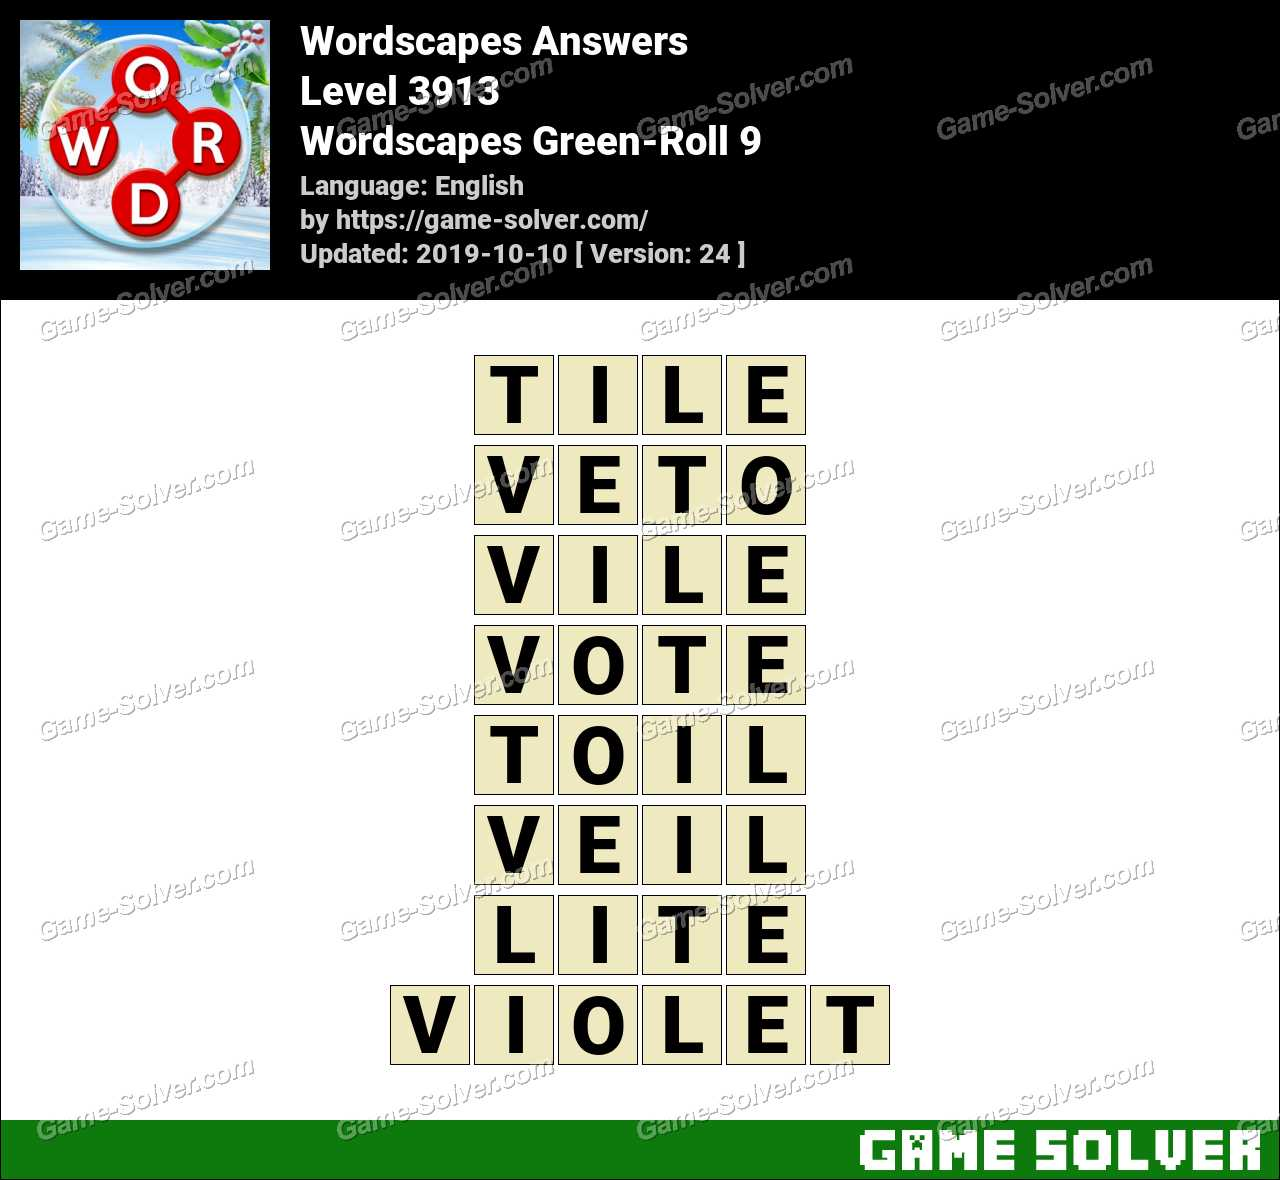 Wordscapes Green-Roll 9 Answers